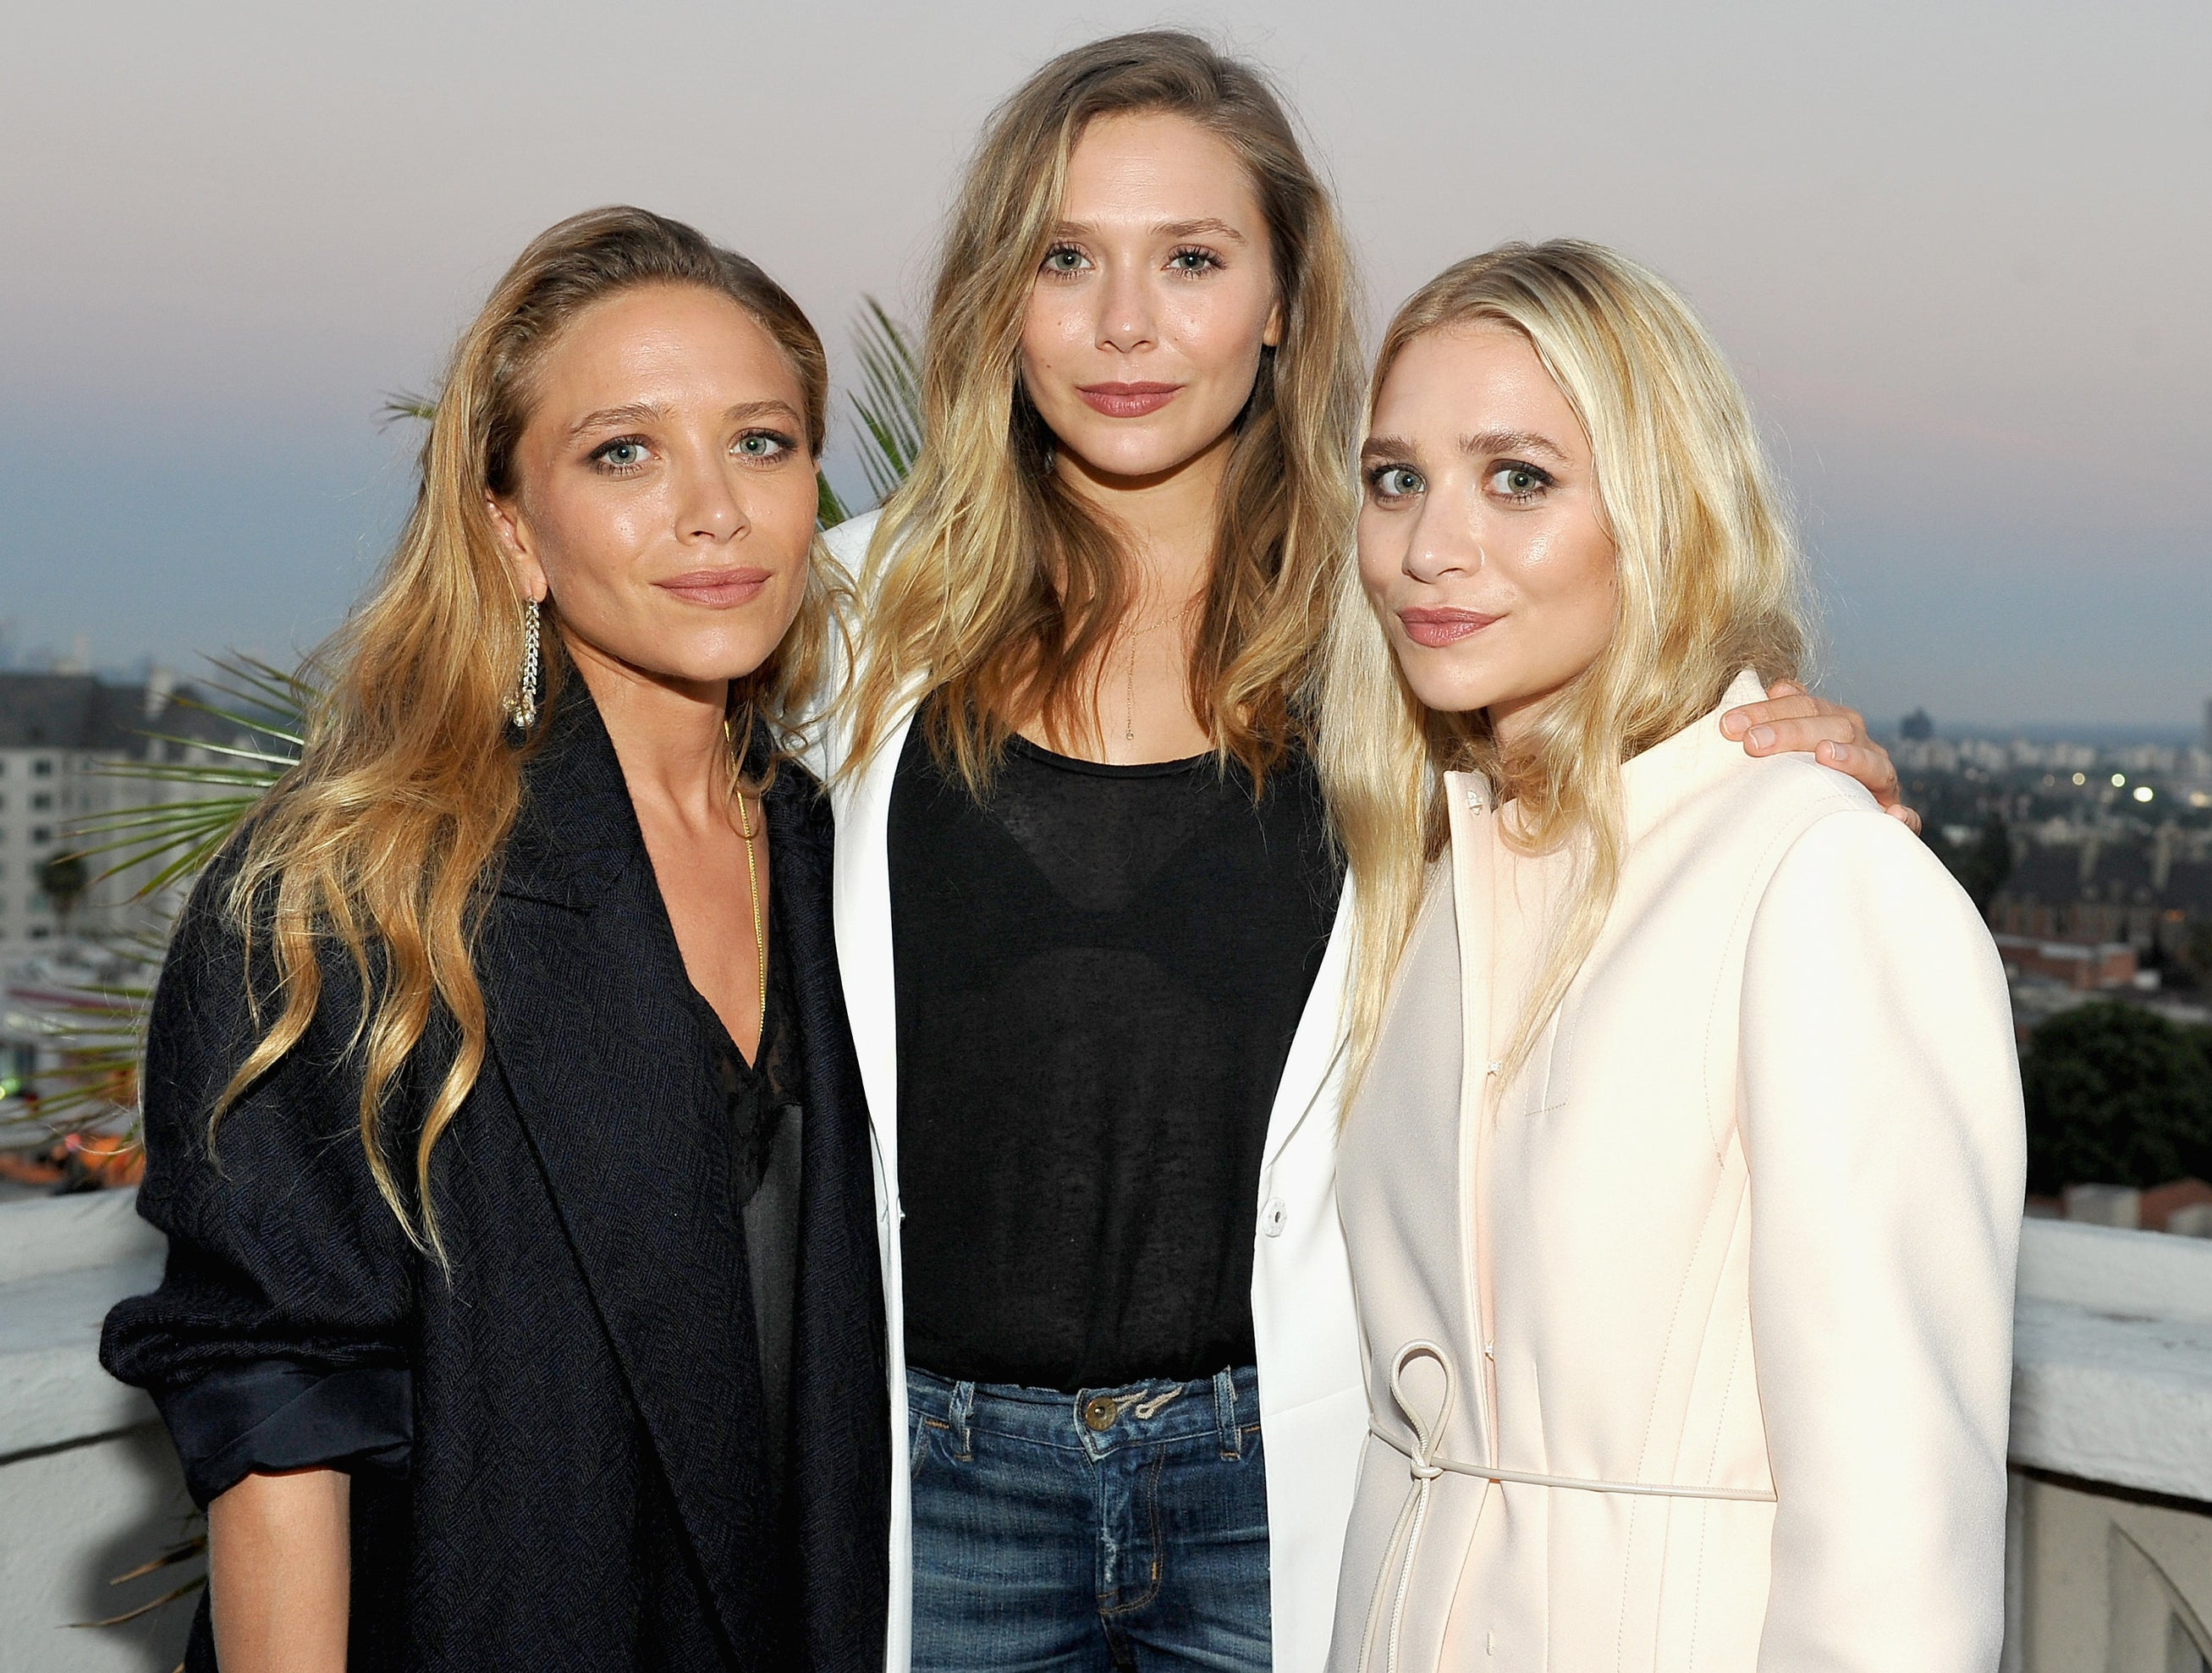 Elizabeth poses with her sisters Mary Kate and Ashley recently